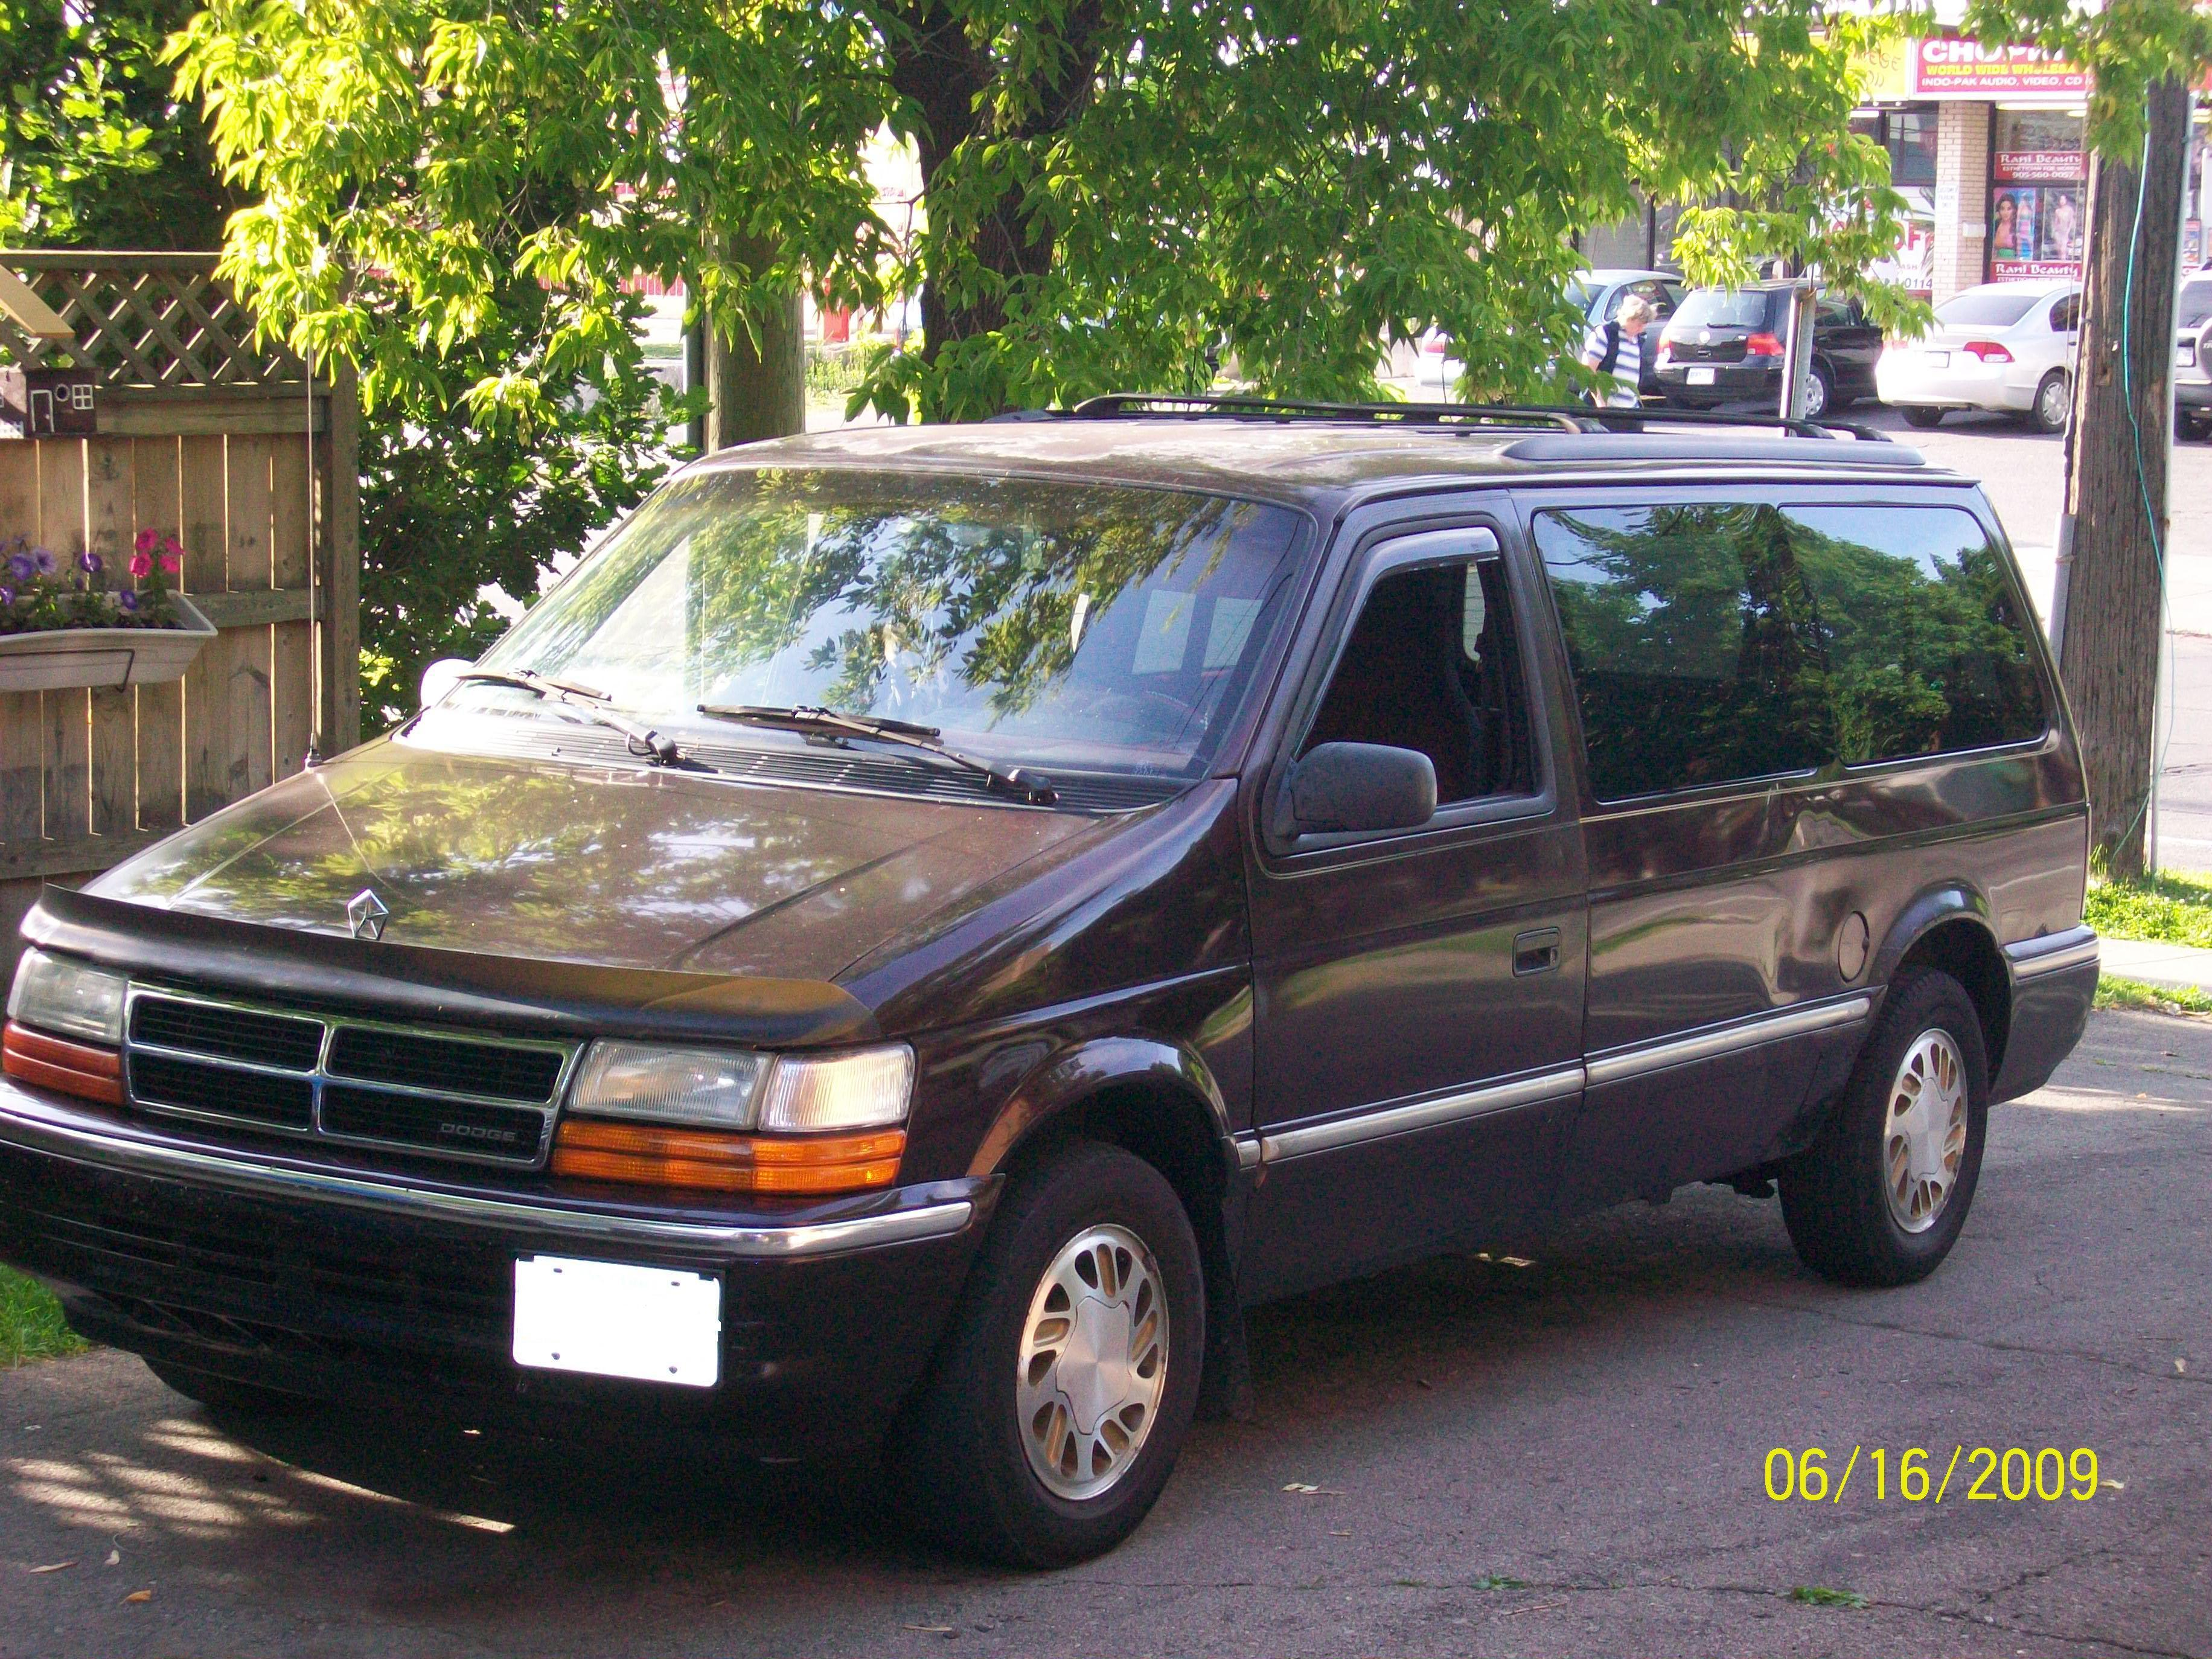 M in addition A Lfromfrontofvehicle moreover Puller in addition Maxresdefault additionally Dodge Caravan A B Orig. on dodge caravan plymouth voyager